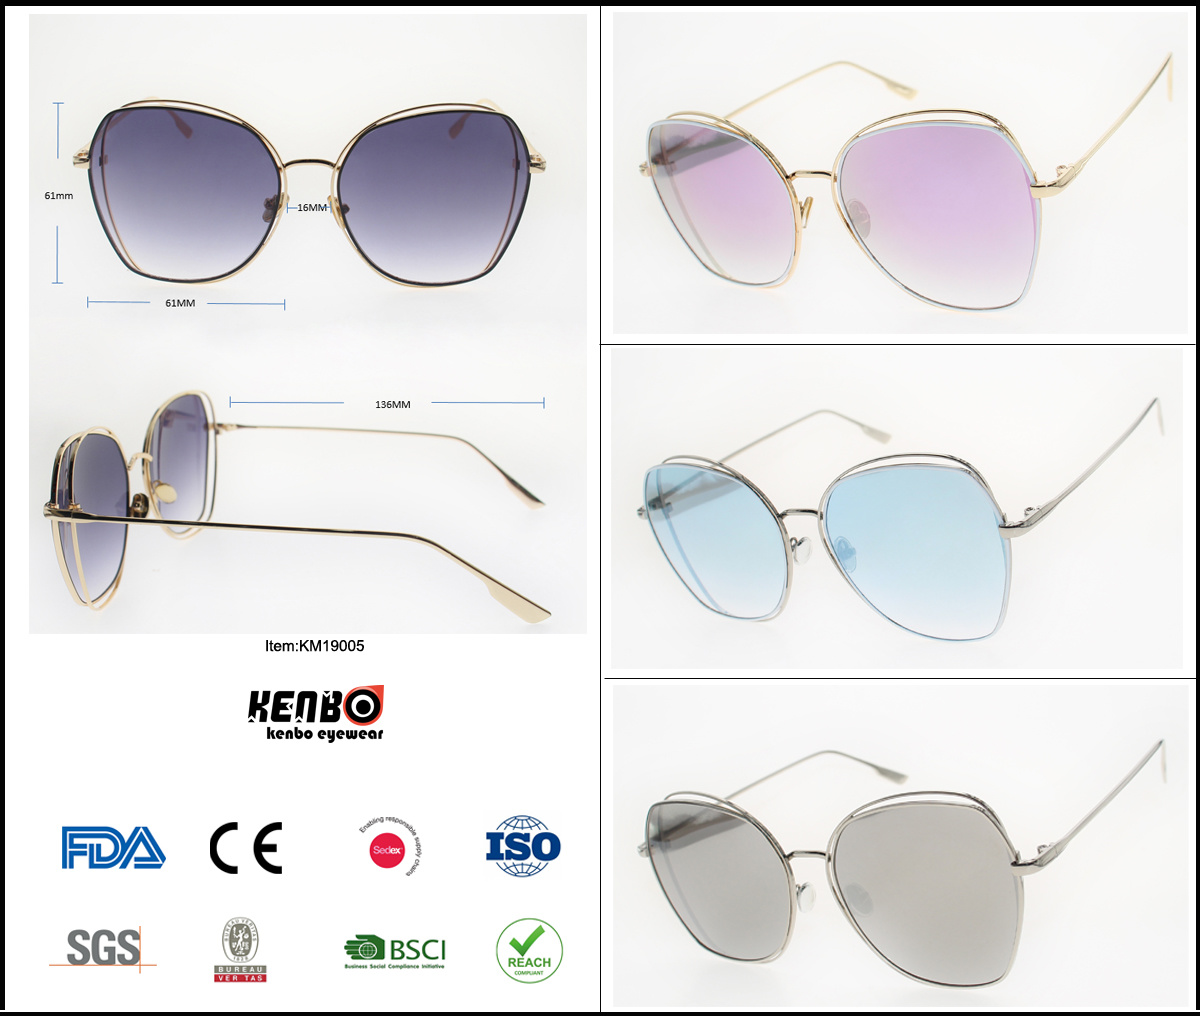 2019 New Metal Fashion Trend Best Selling Sunglasses Rimless, Copy Popular Brand Eyewear, Accessory, Item No. Km19005 pictures & photos